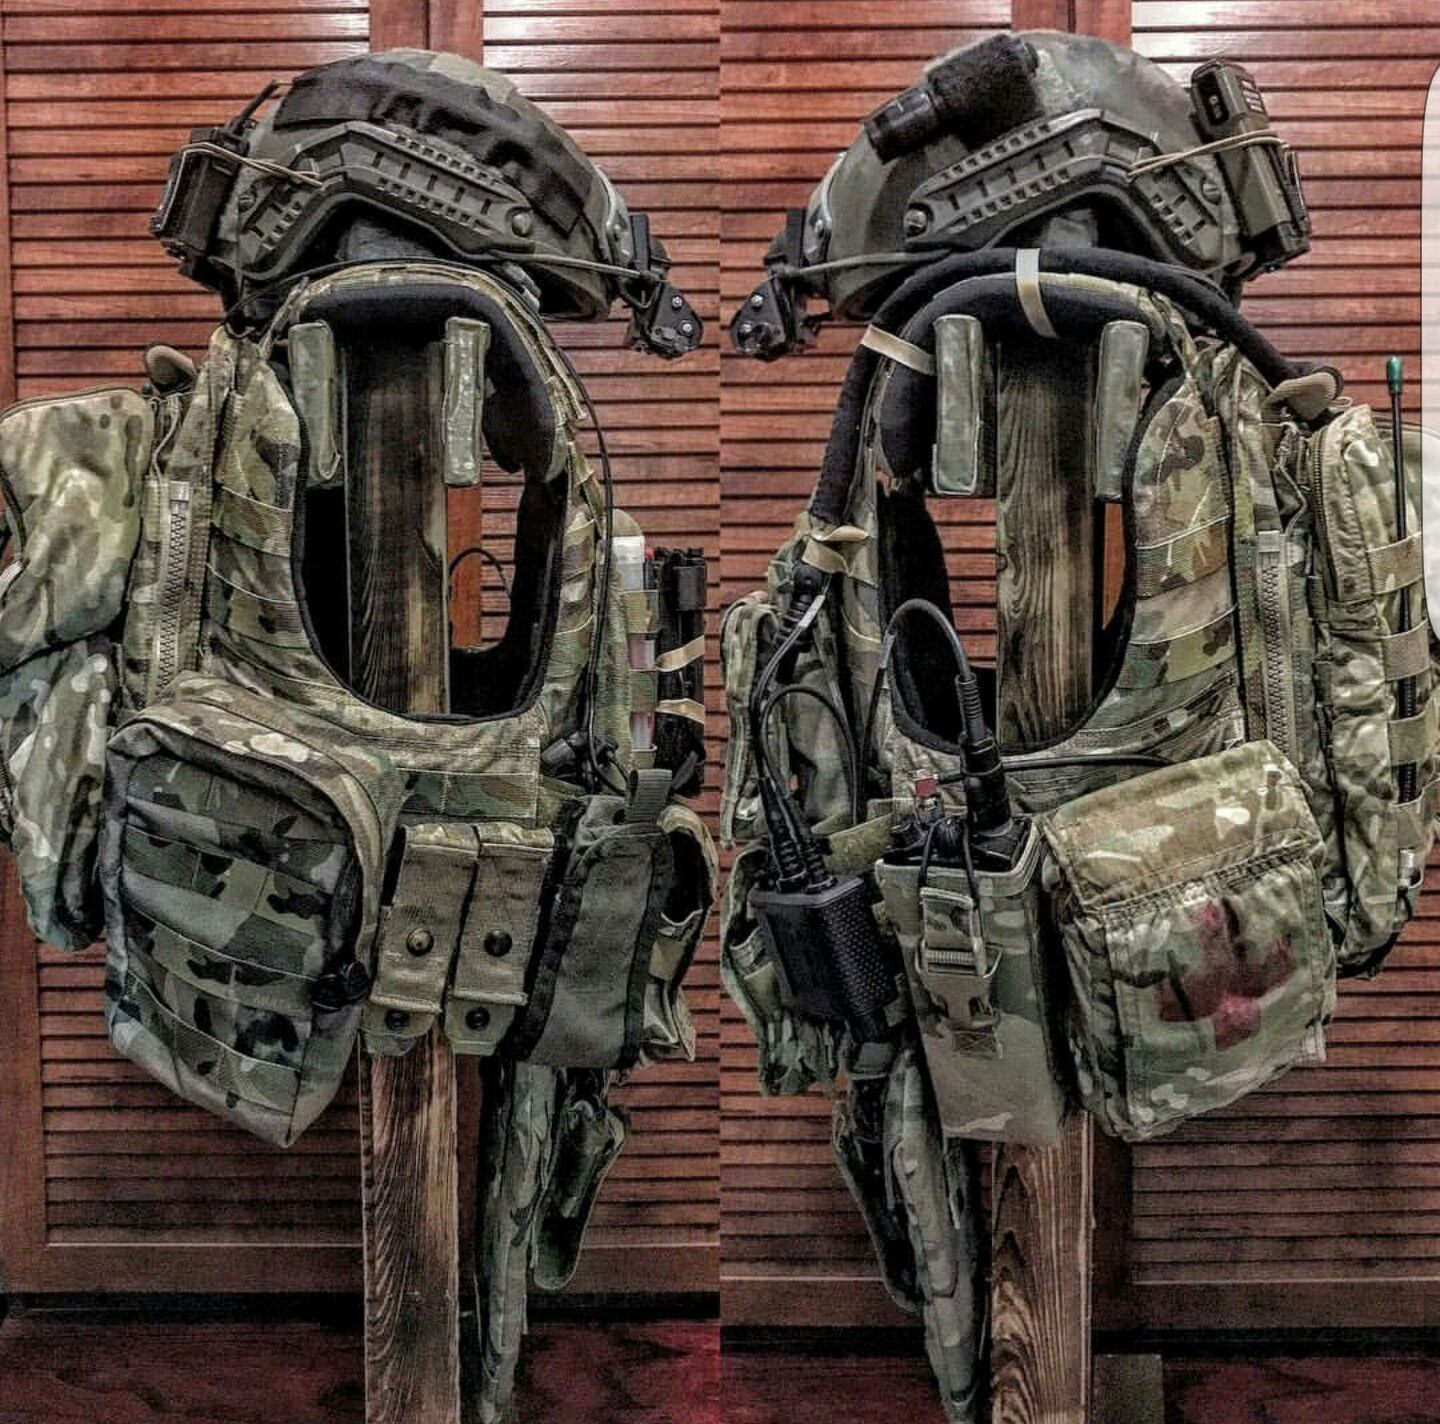 Pin by Aaron Fiss on Plate Carrier Setup | Pinterest | Tactical gear ...